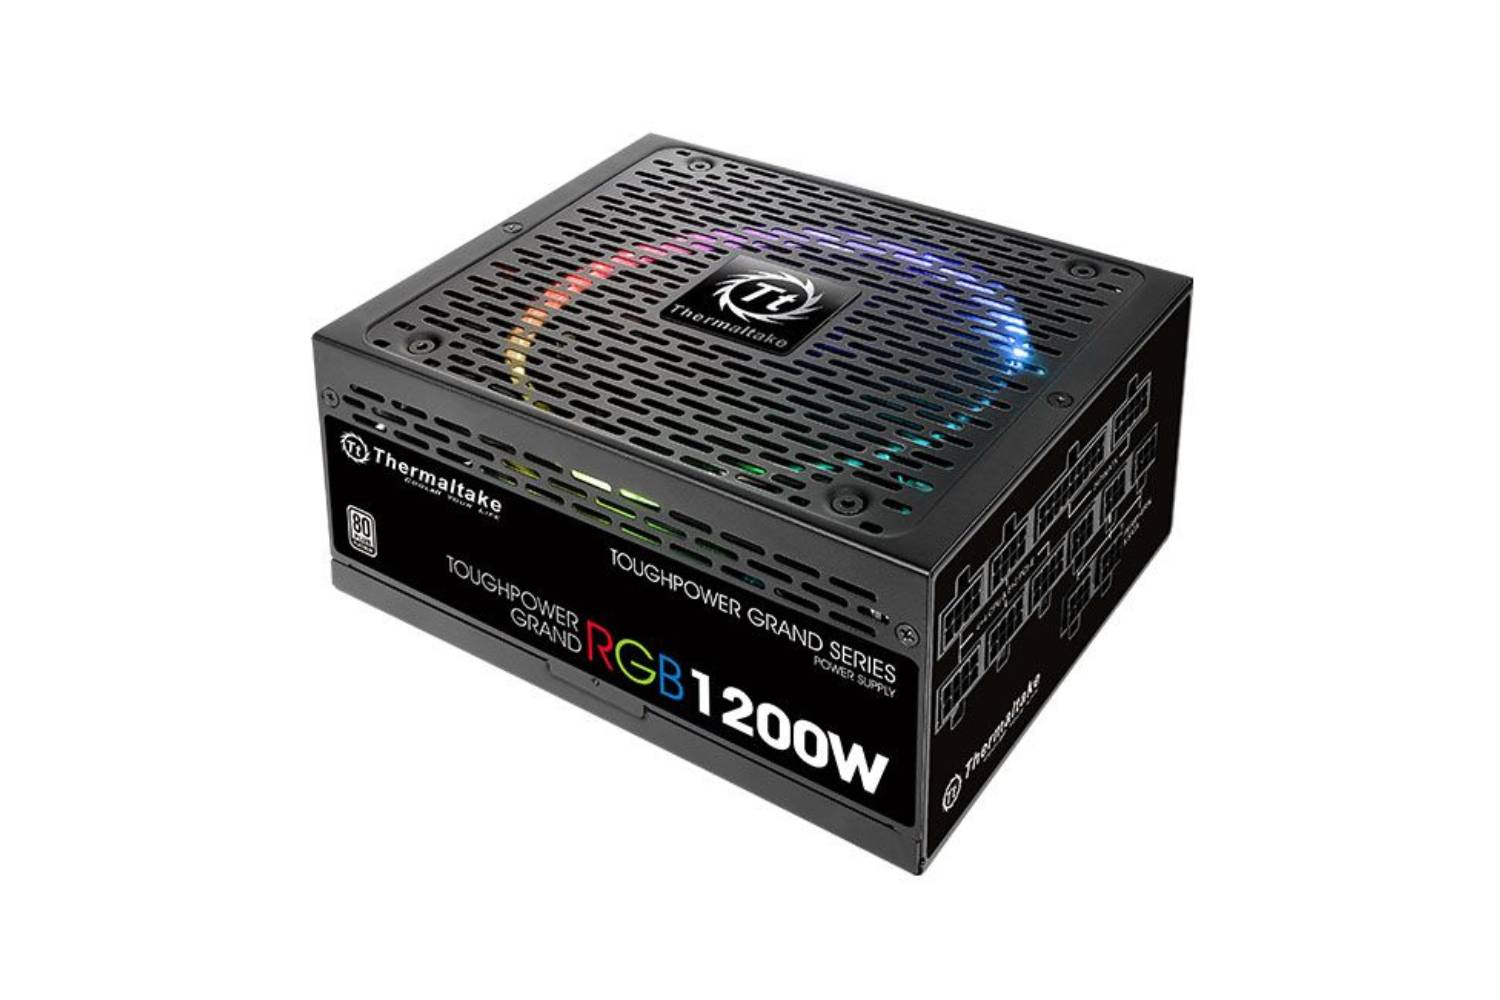 Thermaltake Toughpower Grand RGB 1200W Platinum Power Supply